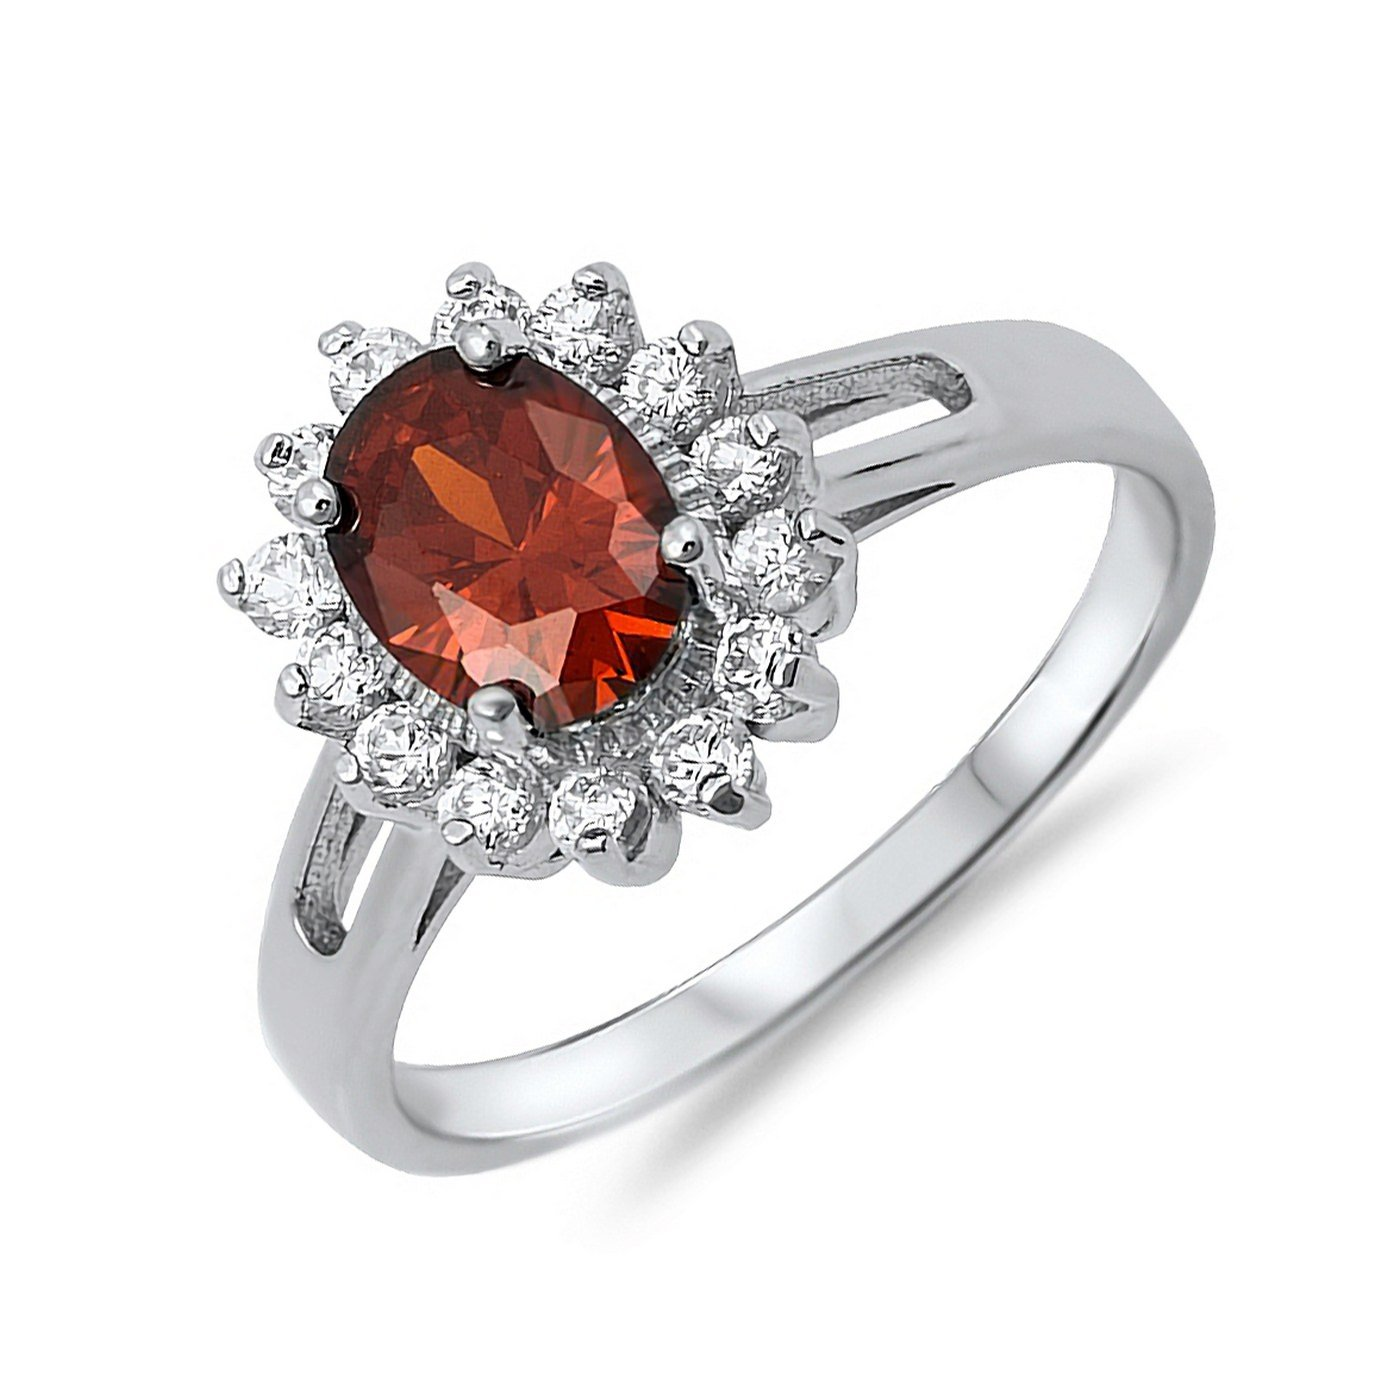 Oval Round Cut Simulated Ruby CZ Halo Style Womens 925 Sterling Silver Ring Sizes 5-9